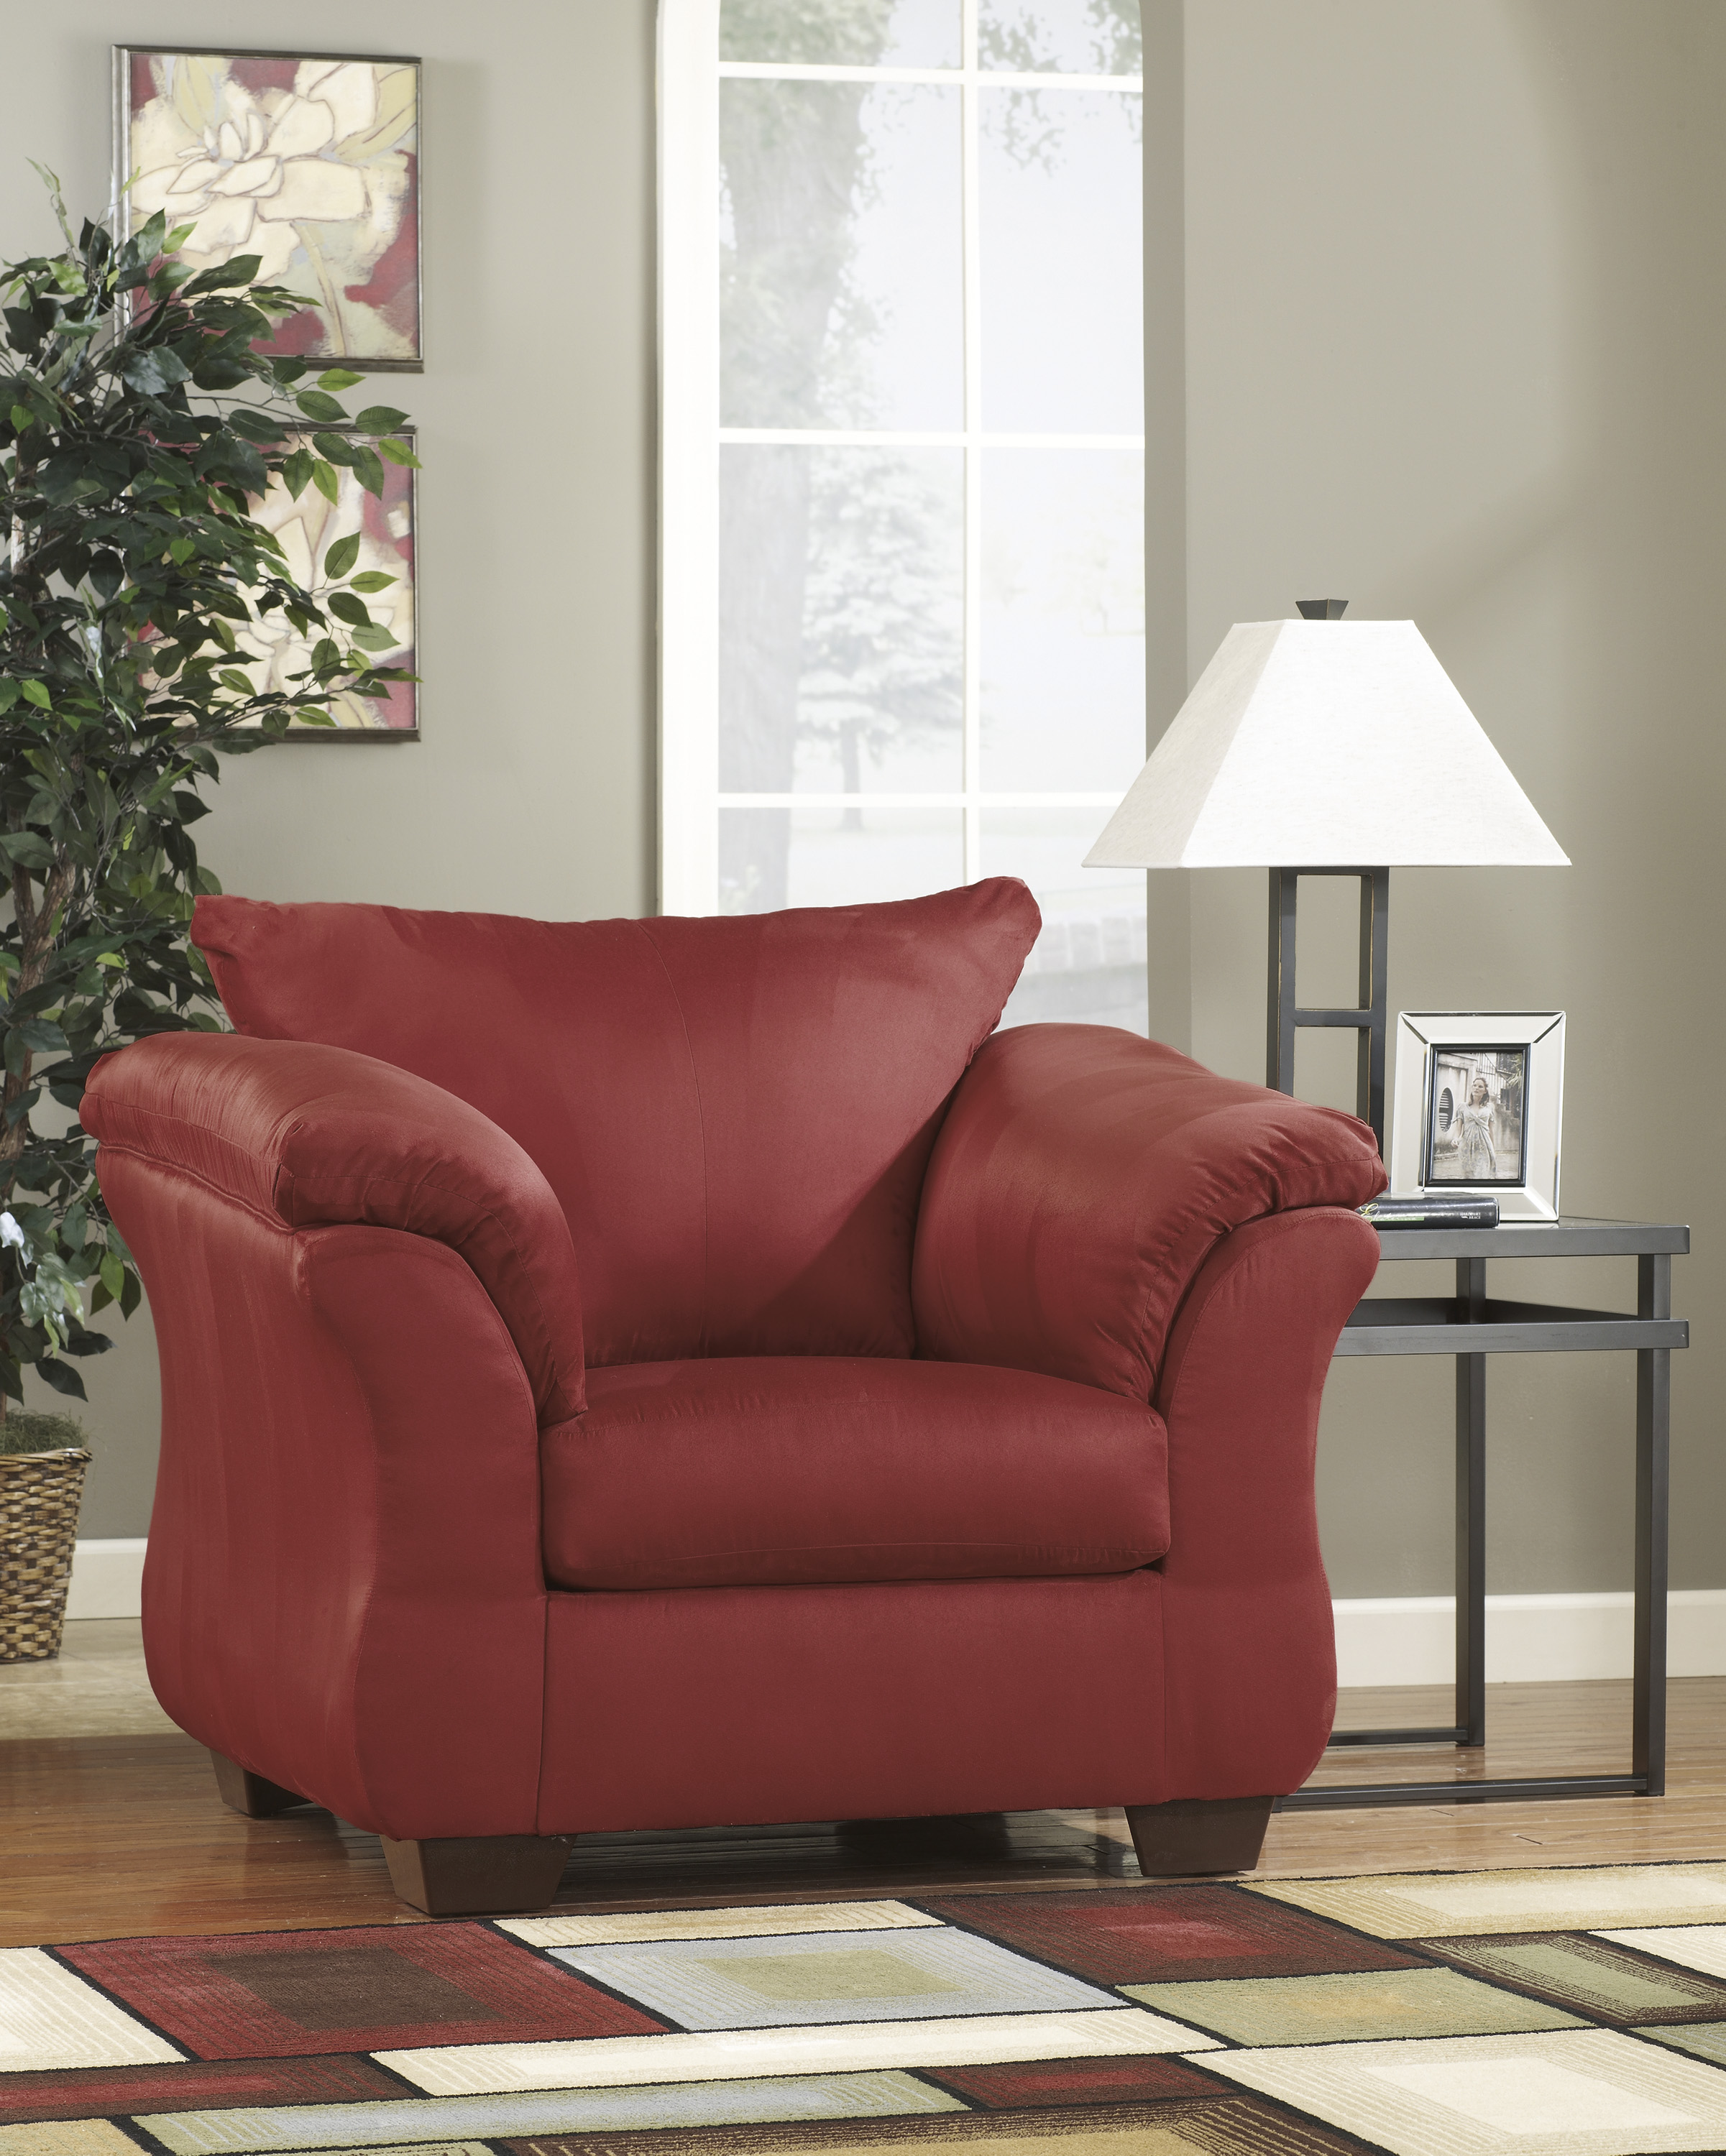 Darcy Salsa Stationary Chair  / $12.99 A Week